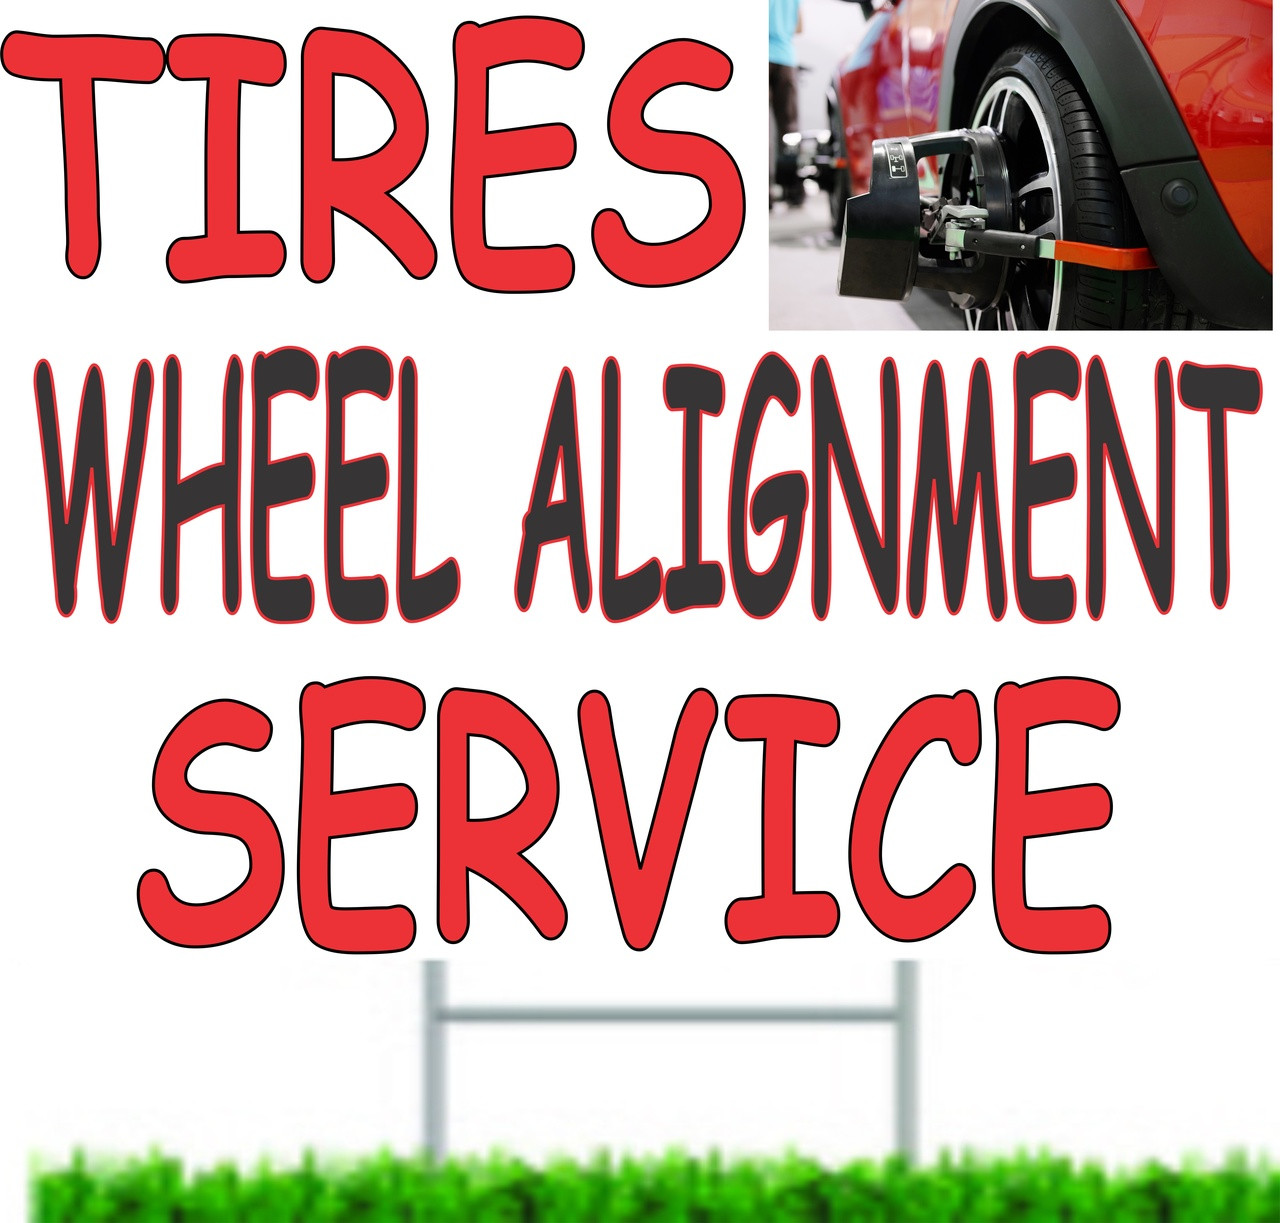 Tires Wheel Alignment SErvice Yard Sign